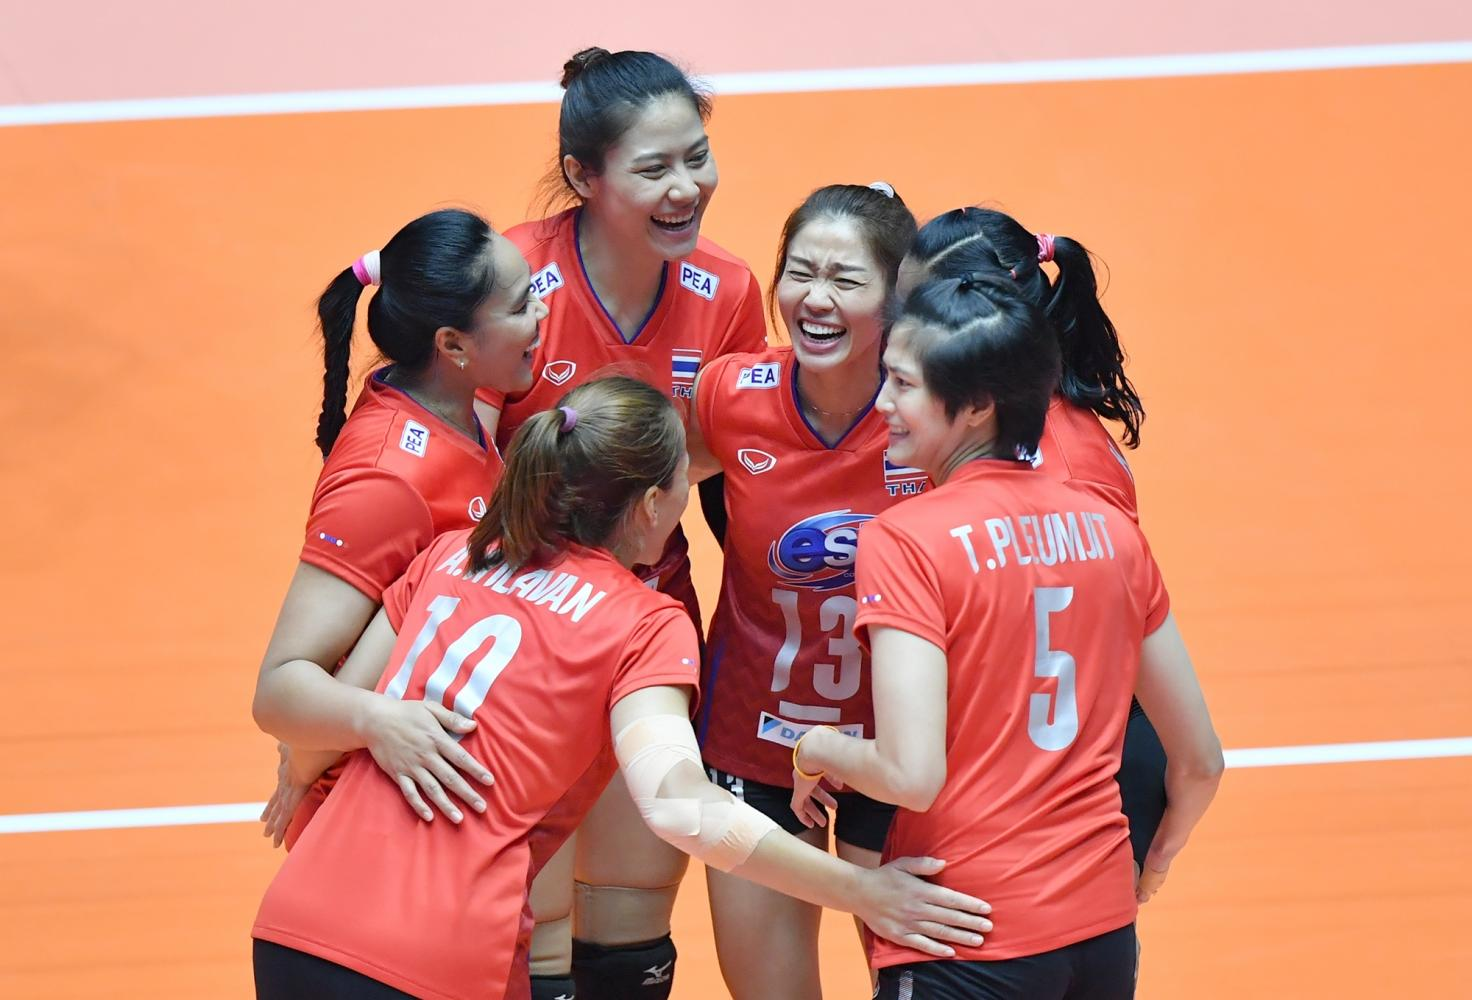 Thailand players celebrate winning a point against Iran.